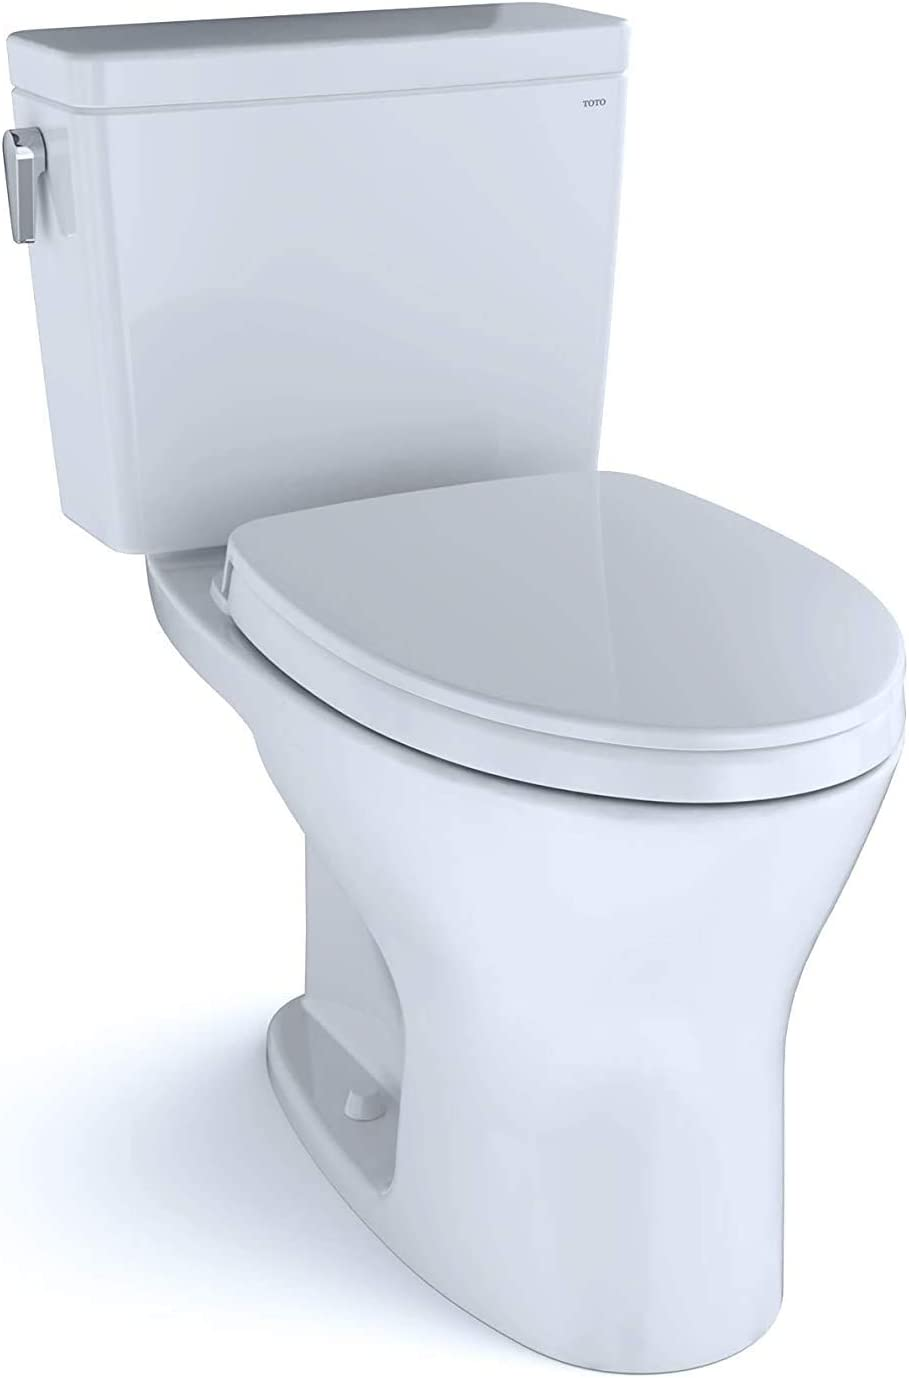 Toto Ms746124cemfg 01 Drake Two Piece Elongated Dual Flush 1 28 And 0 8 Gpf Universal Height Dynamax Tornado Flush Toilet With Cefiontect And Softclose Seat Washlet Ready Cotton White Amazon Co Uk Diy Tools